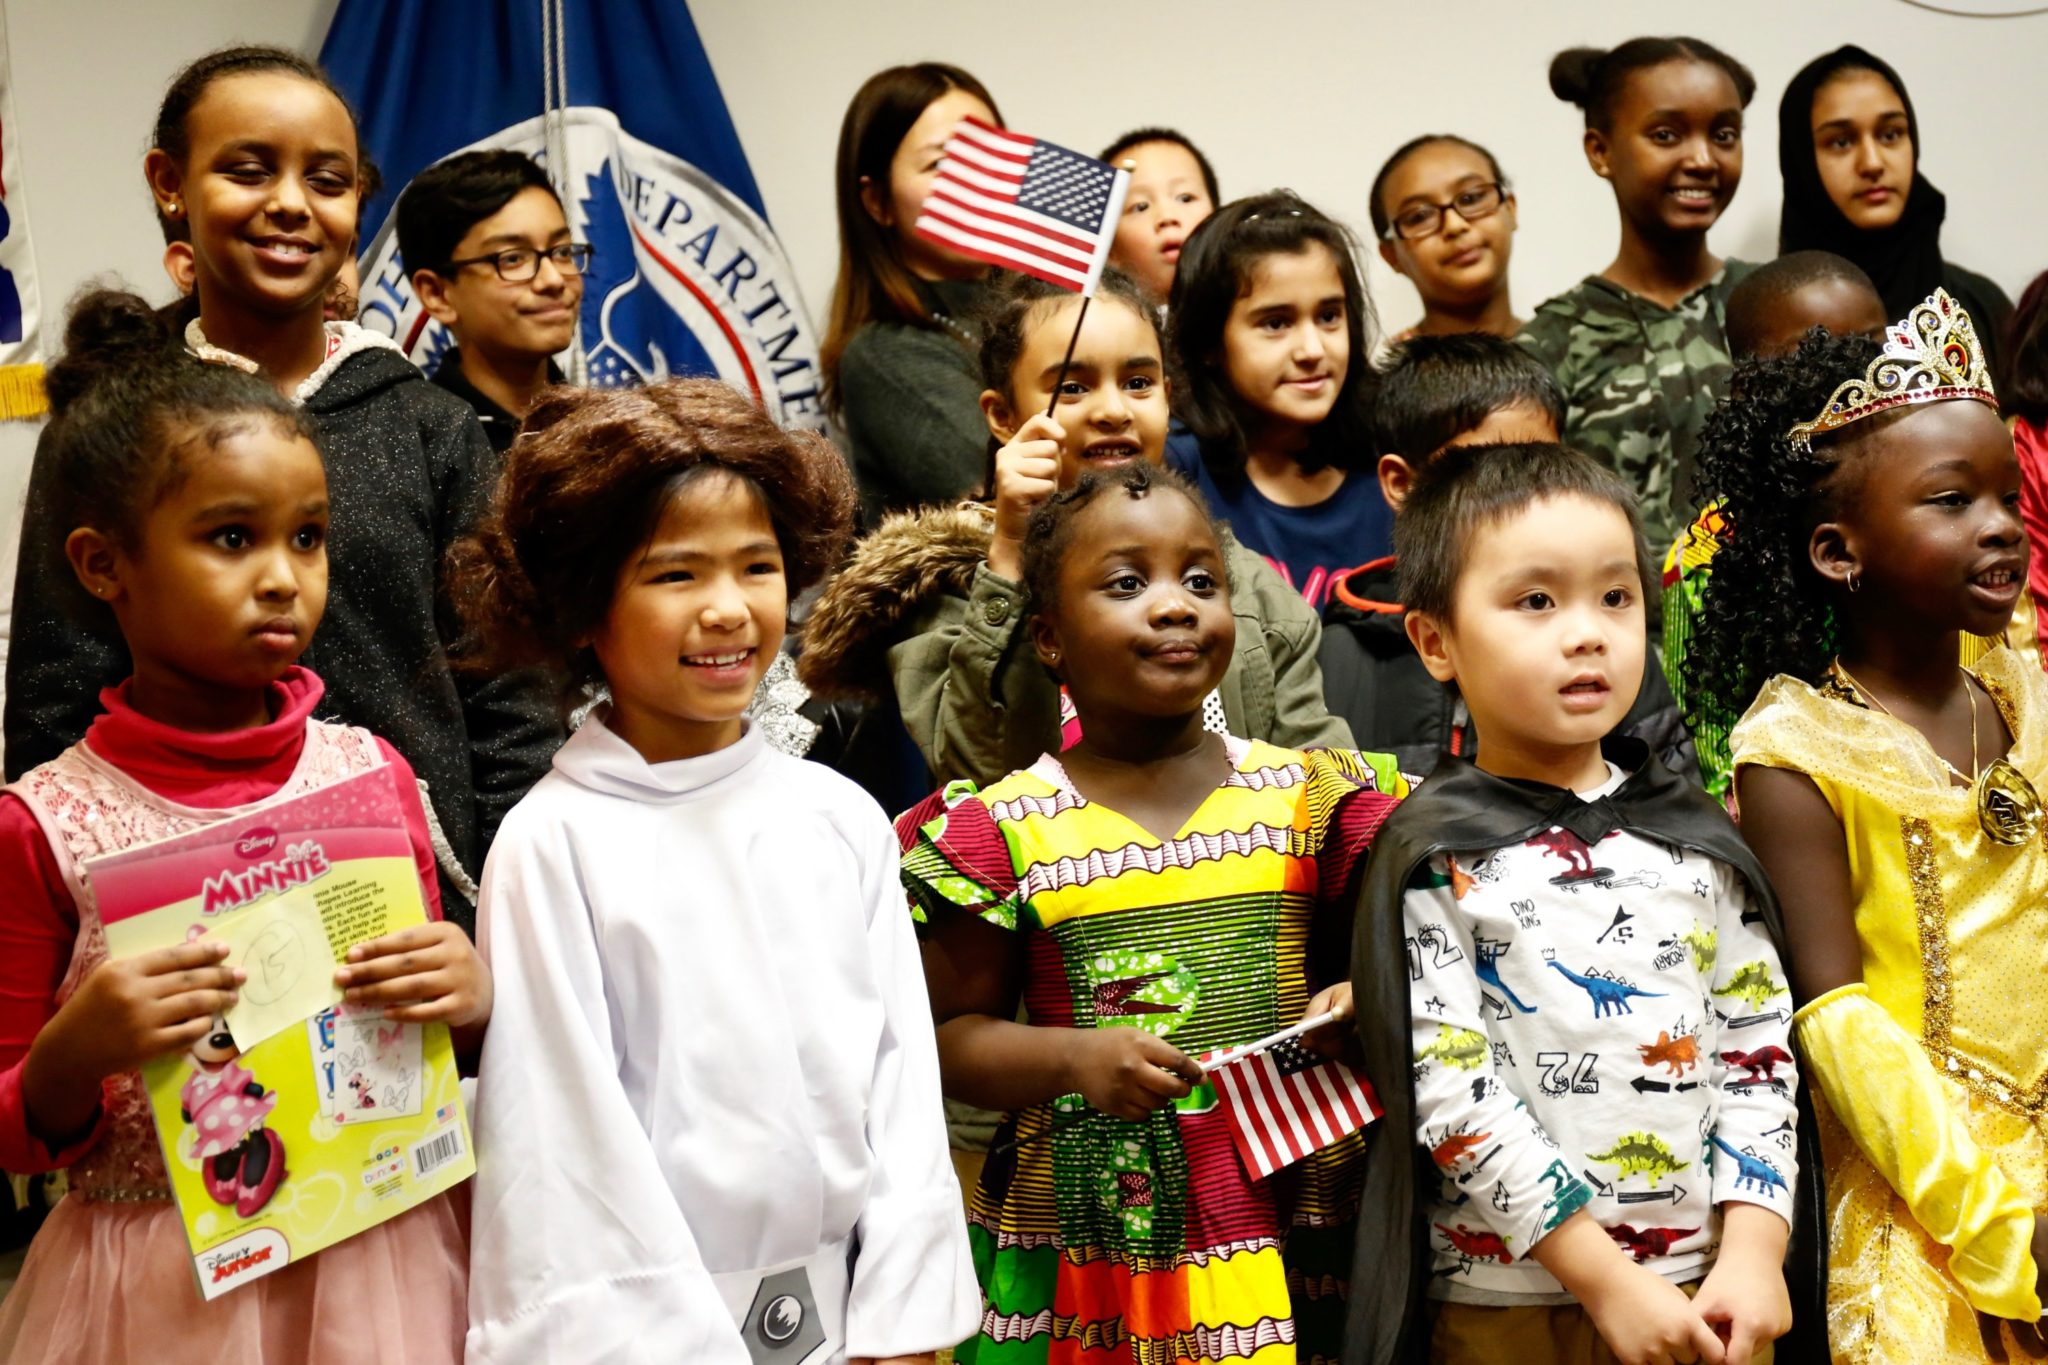 When Kids Become US Citizens on Halloween, You'd Better Believe They Dress Up